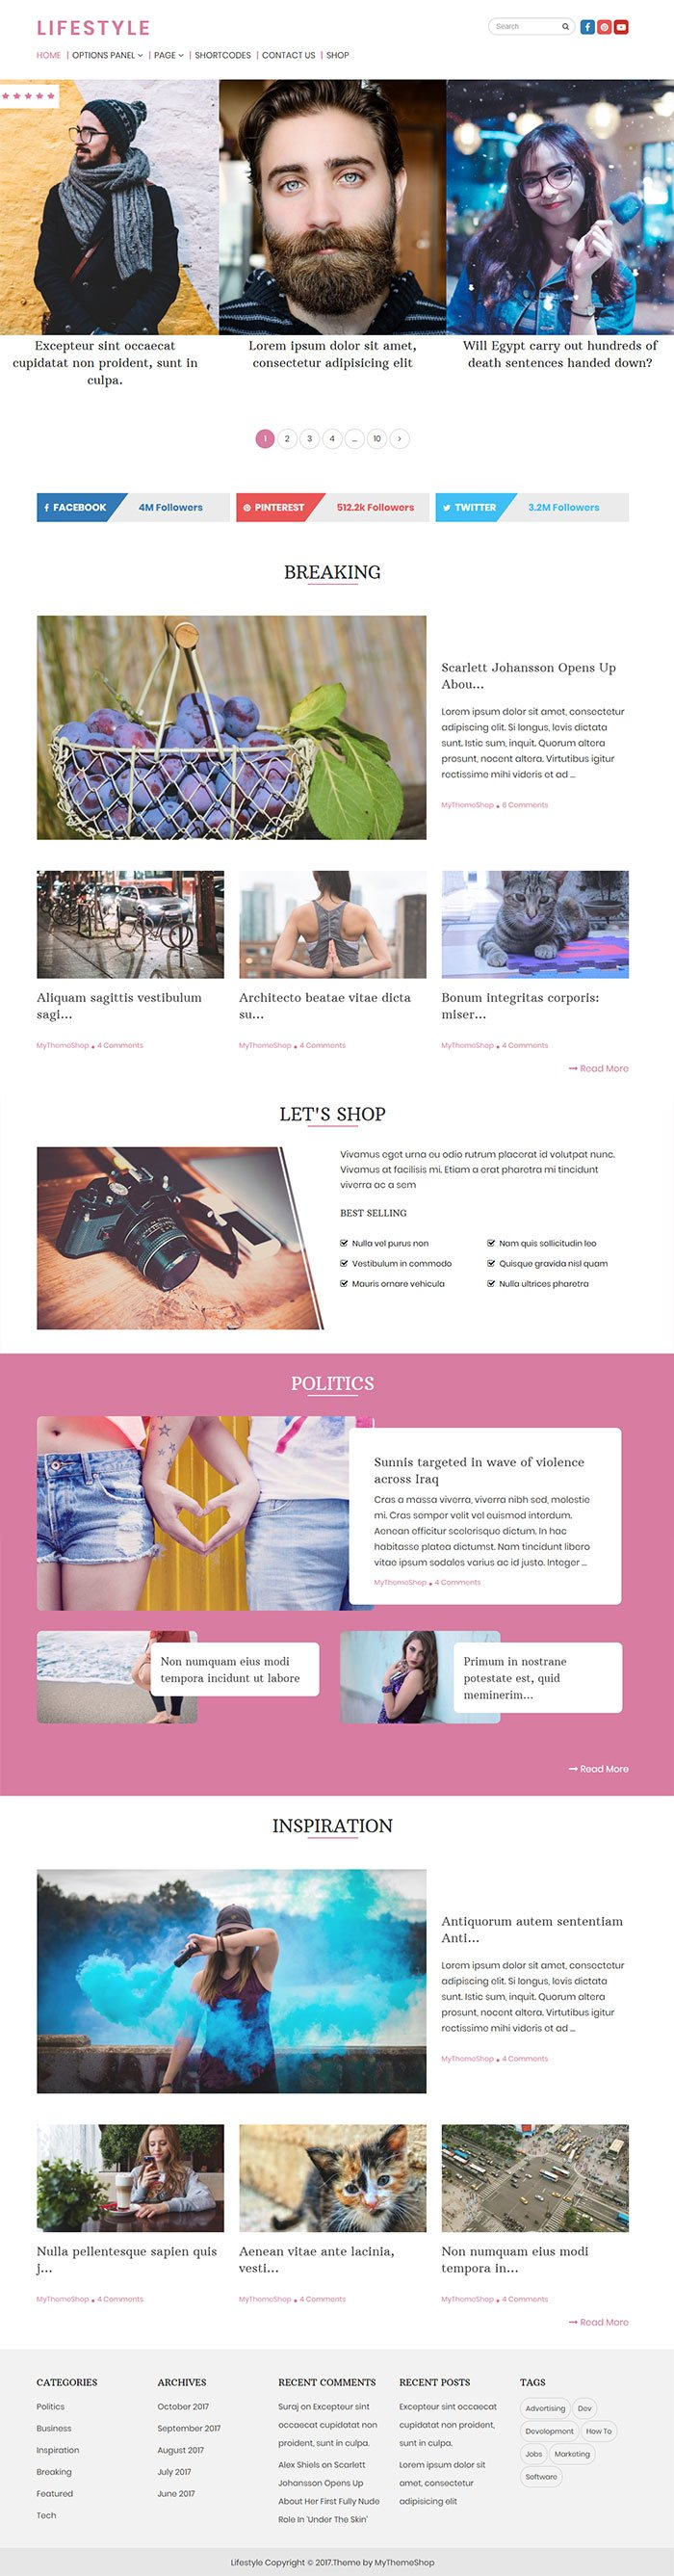 Lifestyle-Elegant-Magazine-WordPress-Theme-Mythemeshop